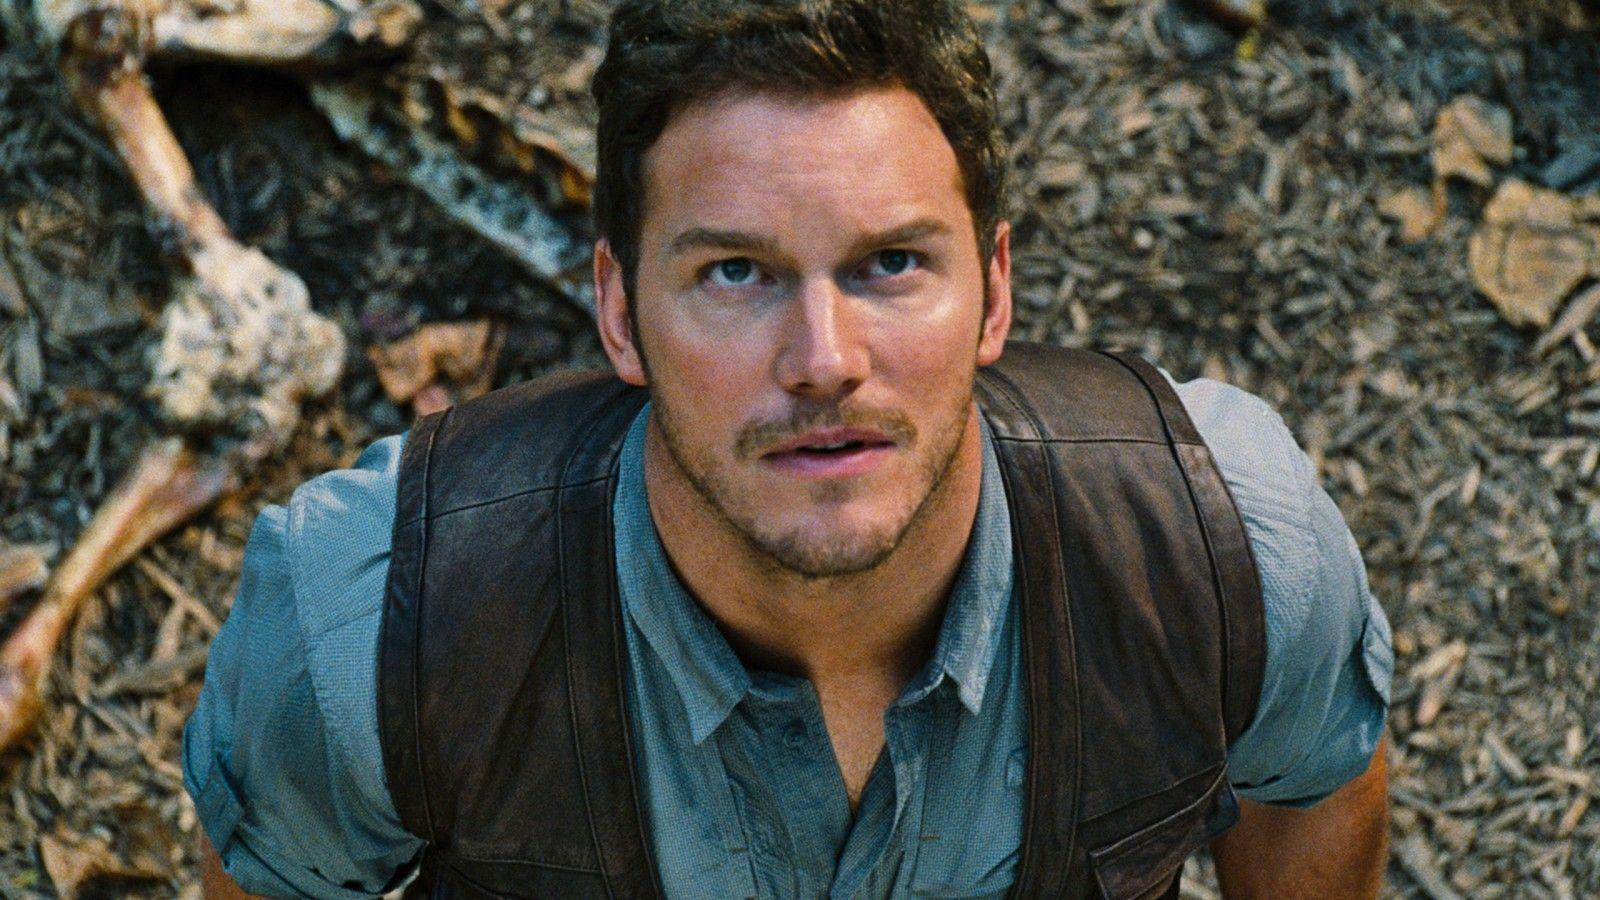 Chris Pratt Wallpapers HD Collection For Free Download